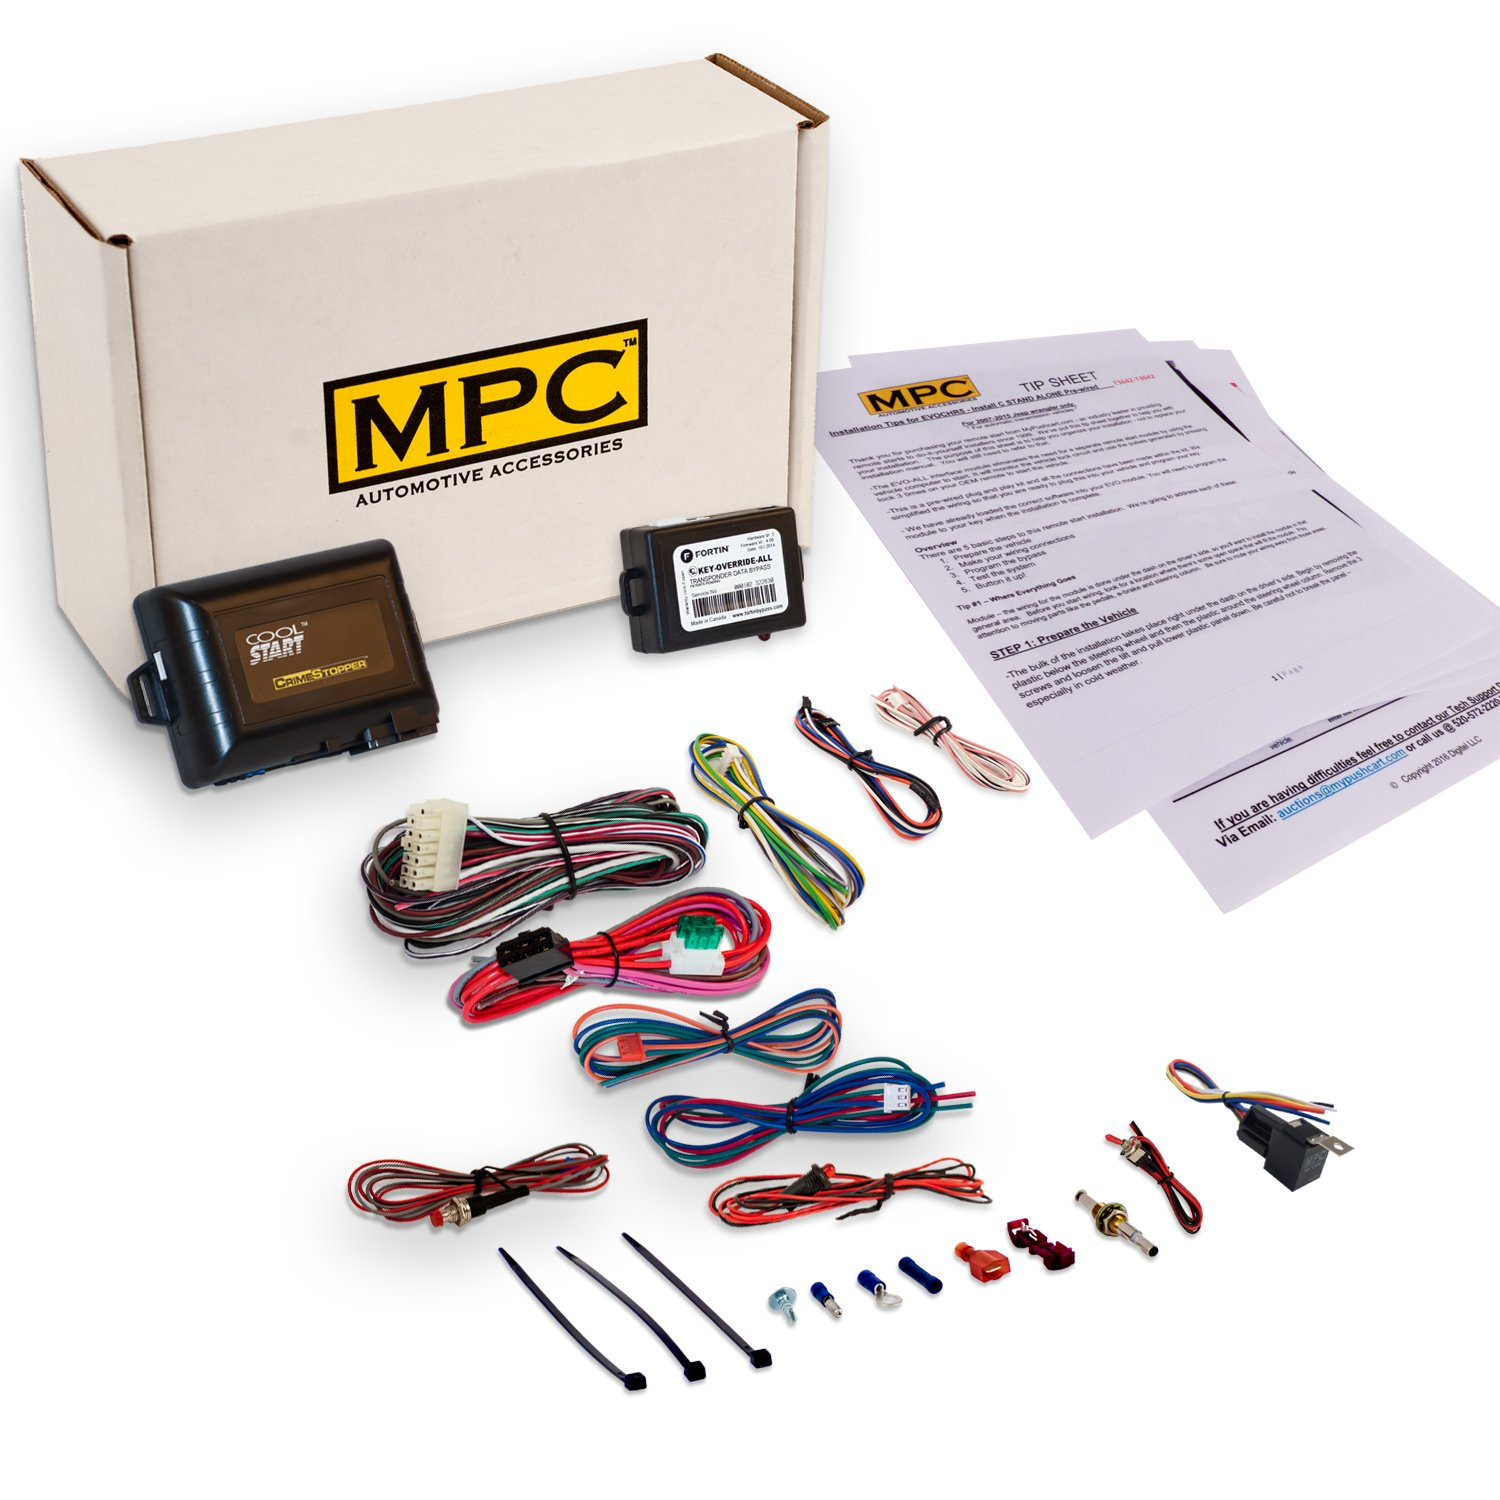 Complete Add-on Remote Start Kit For 2004-2008 Ford F-150 - Use Your Factory Remote - Includes Bypass